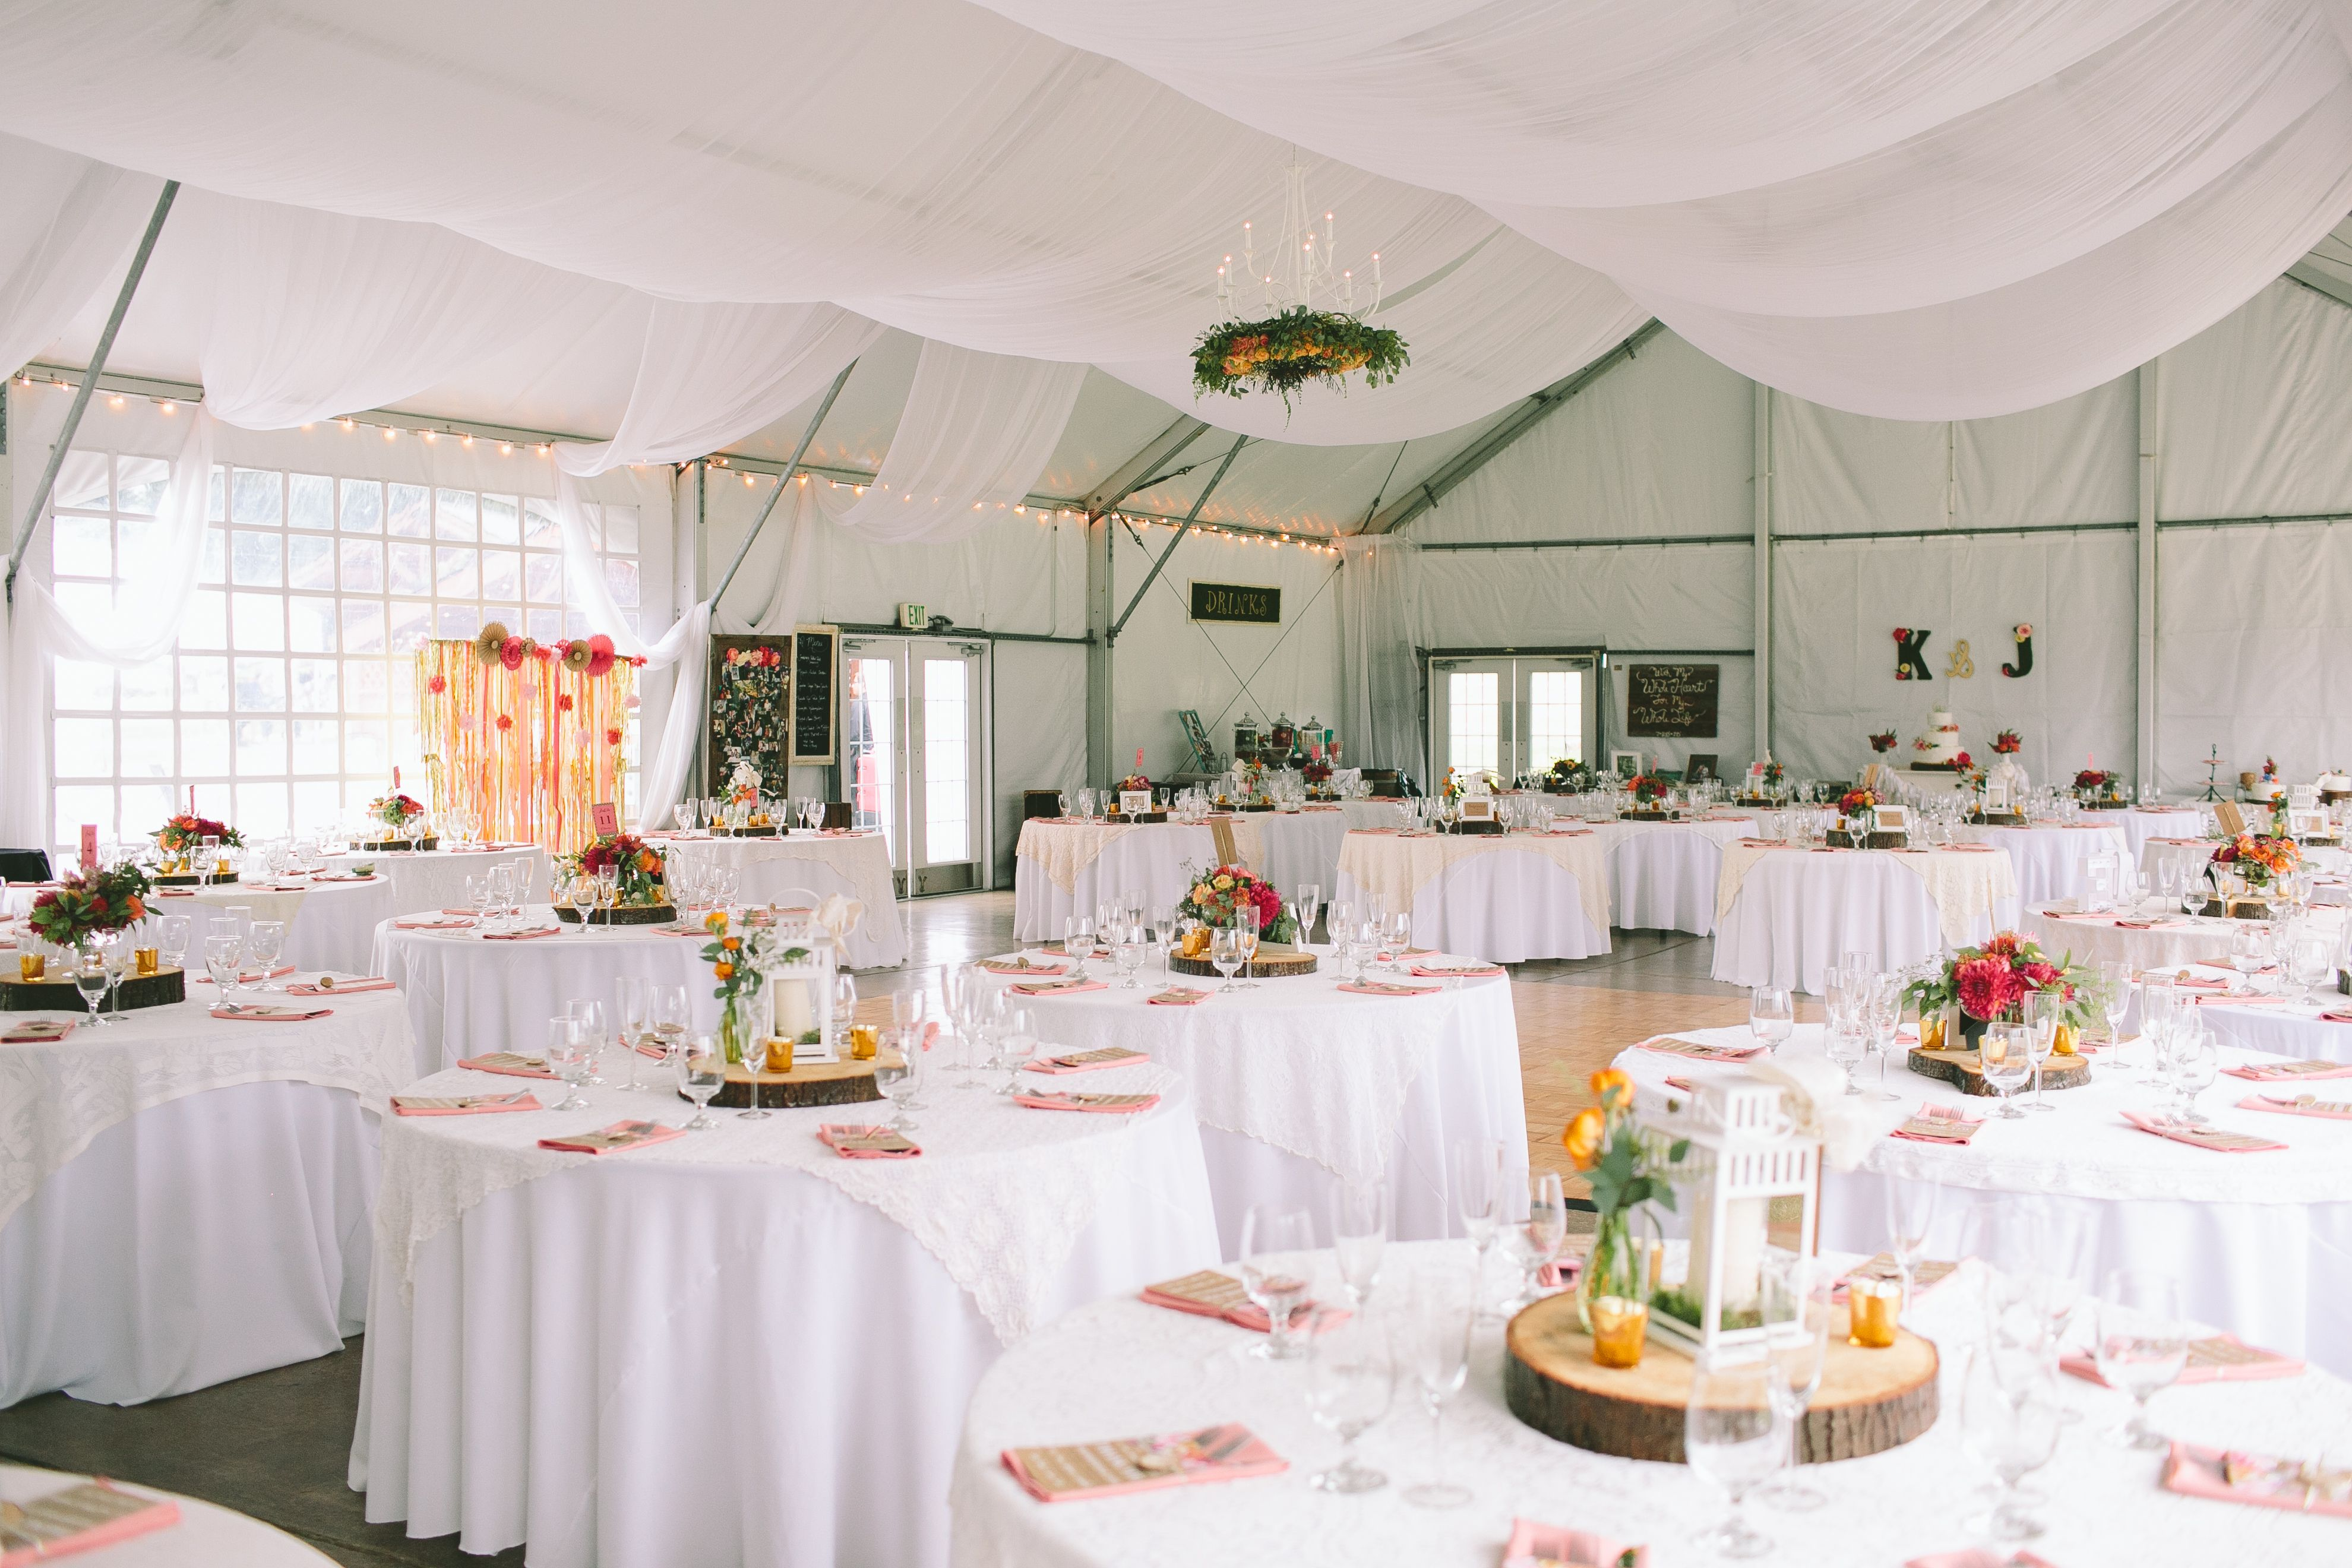 St Johns Venue Hire Vast White Walls And Varnished Wooden Floors 66bb77e255cd2ae0defd69a33ad0595a 555913147731392732 Indoors Wedding Reception With